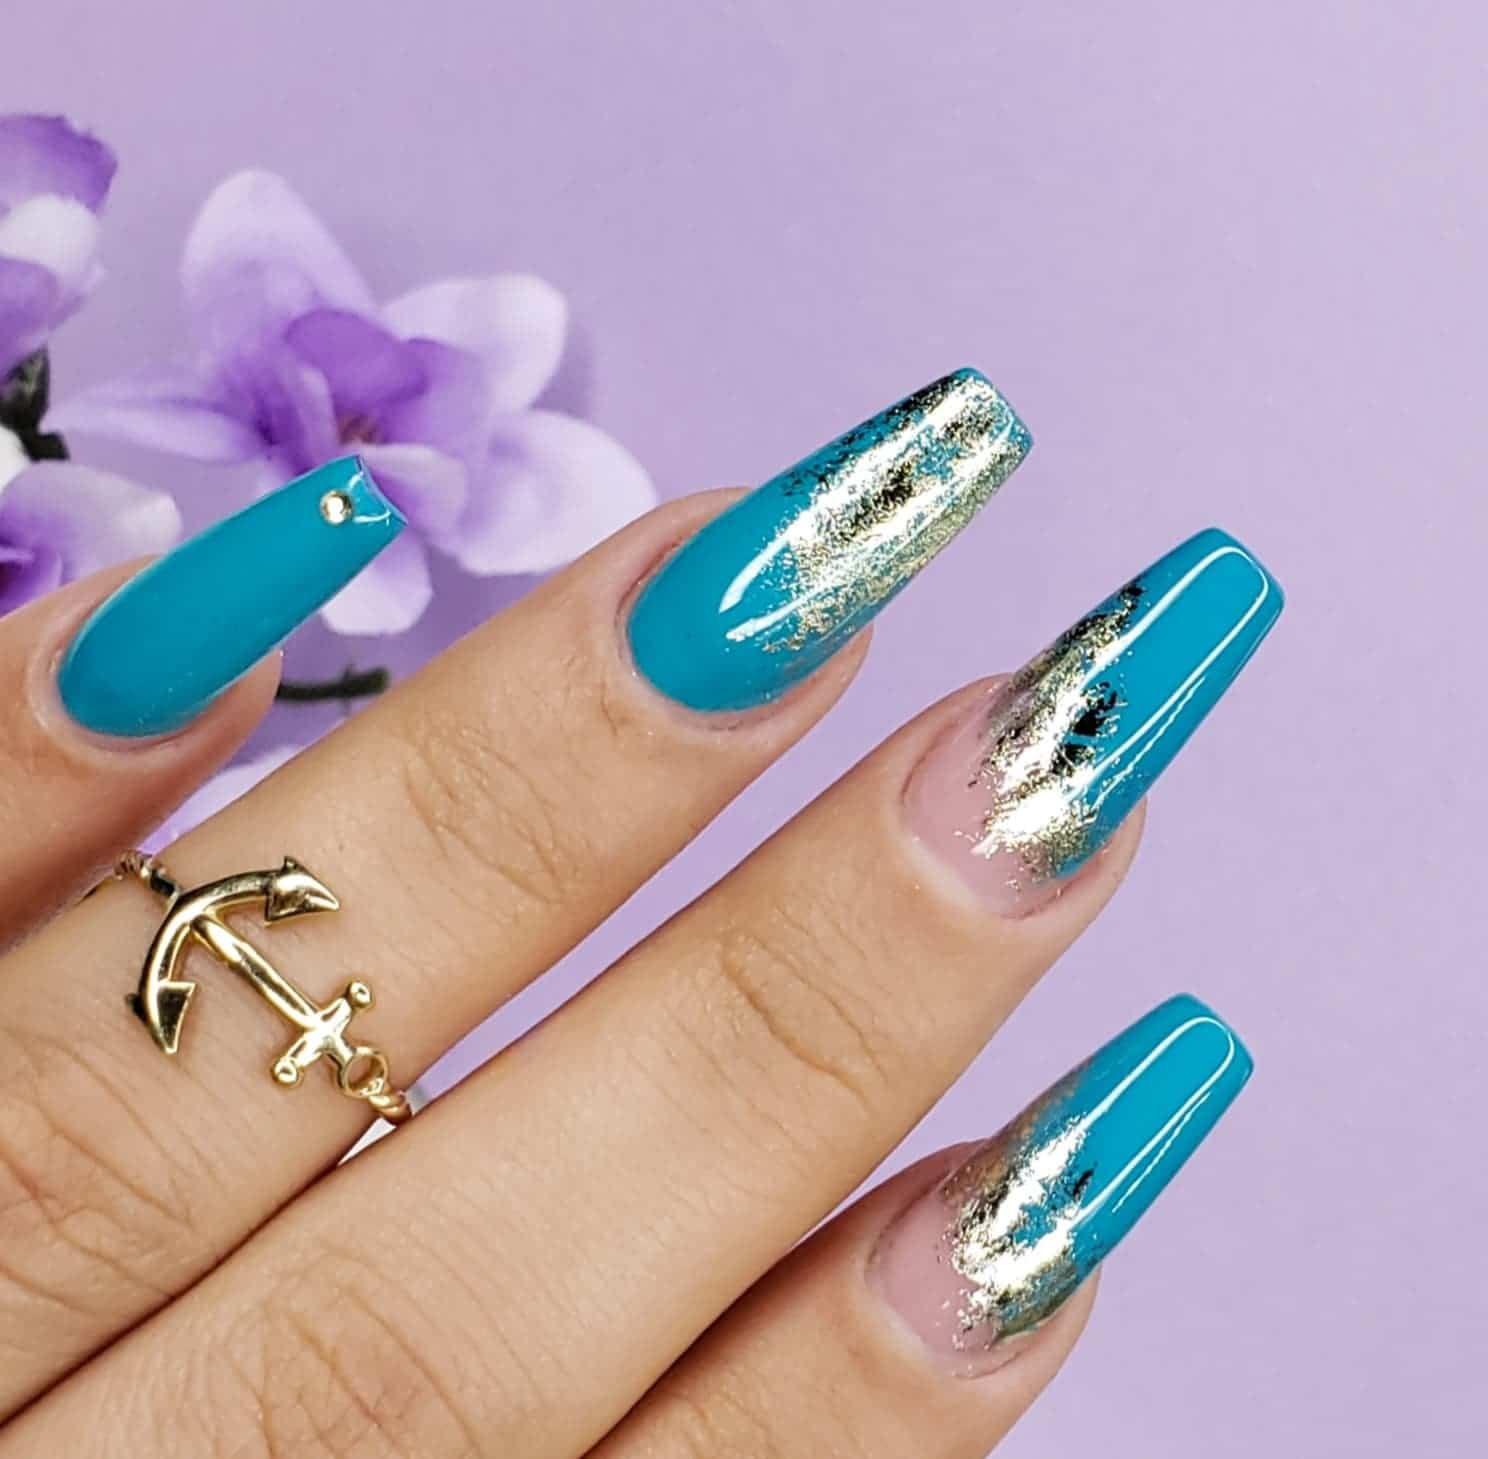 Acrylic Nails Coffin: 5 Things You Should Know About - All Nail Art